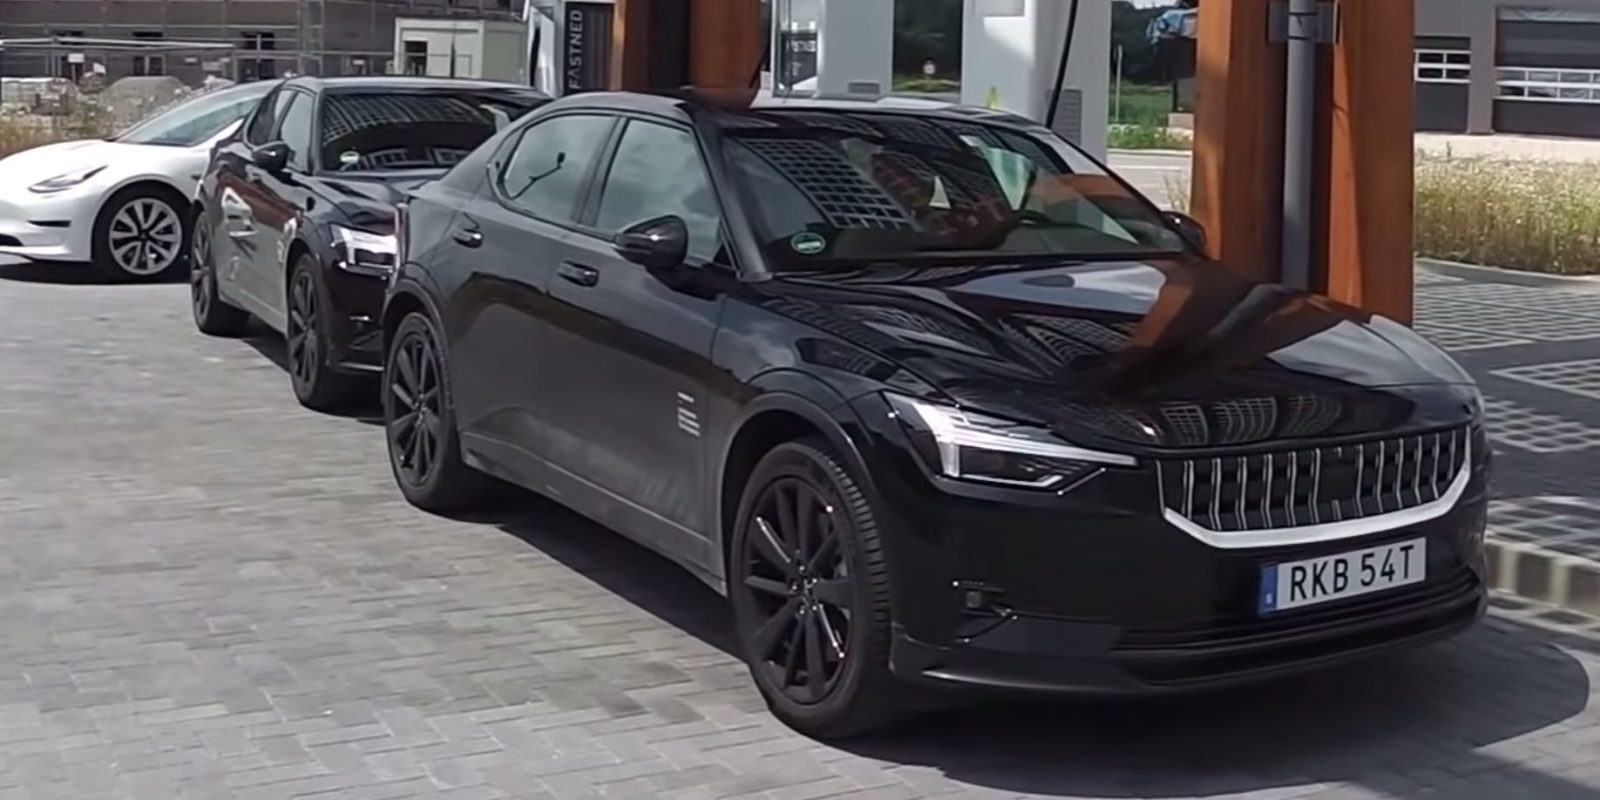 Porsche Taycan and Volvo Polestar 2 prototypes spotted up close